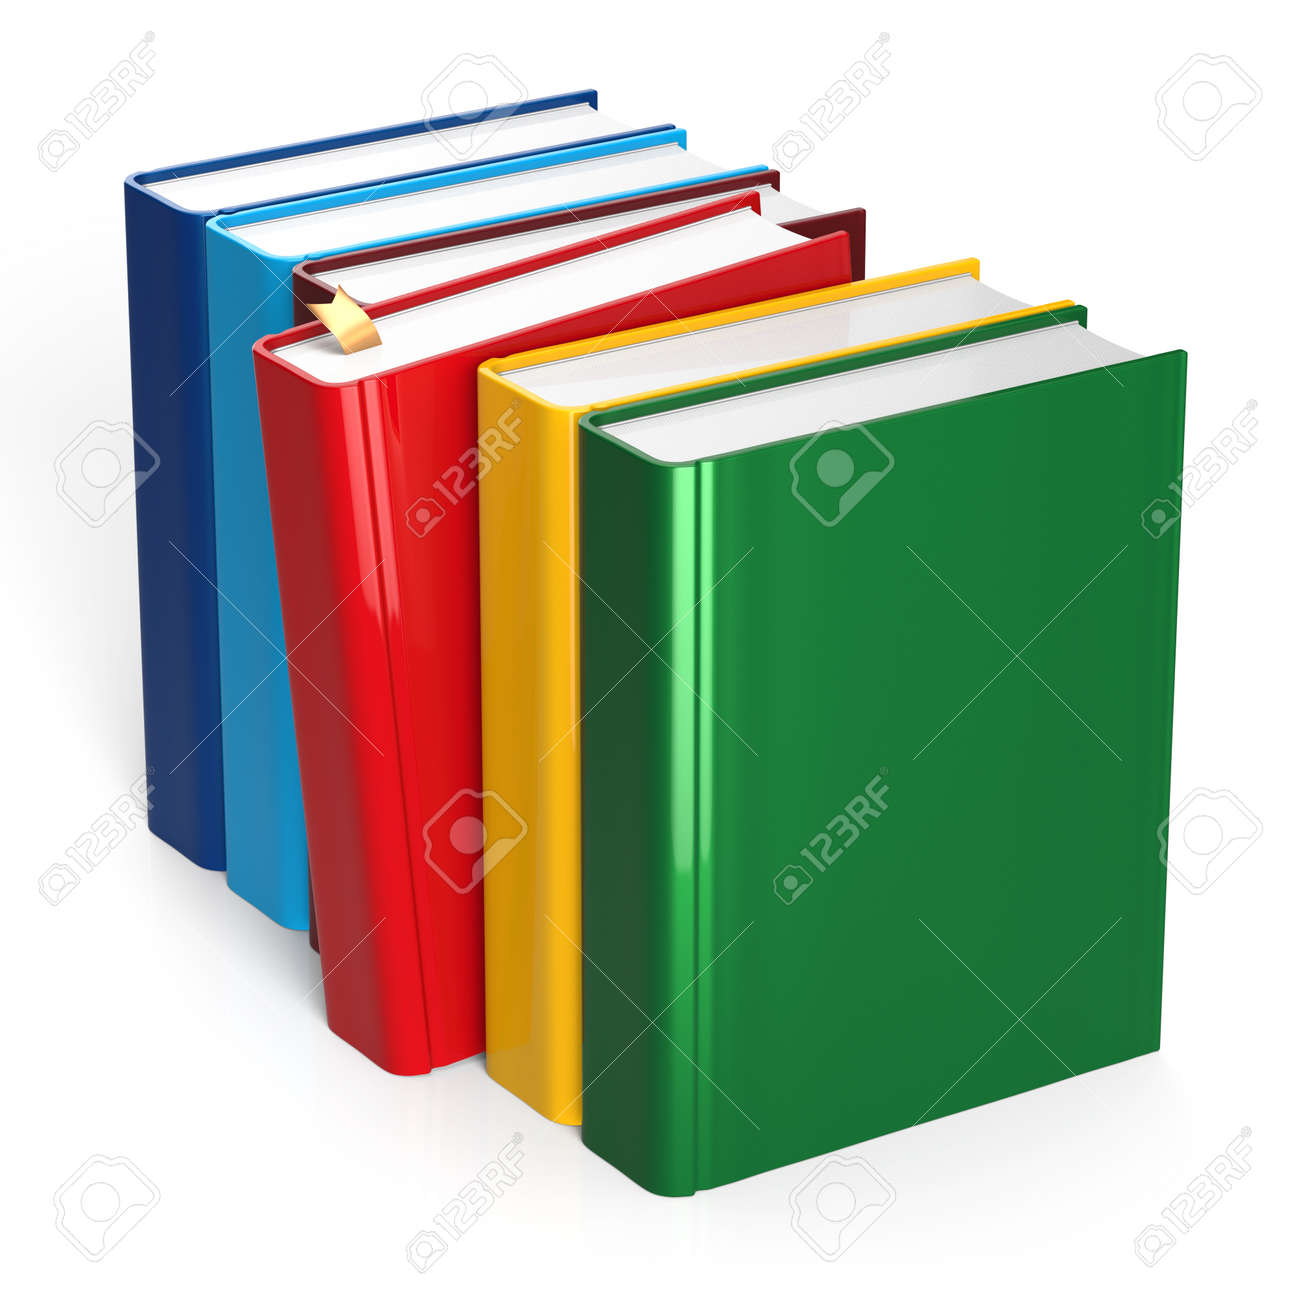 books row colorful selecting red blank covers standing textbook